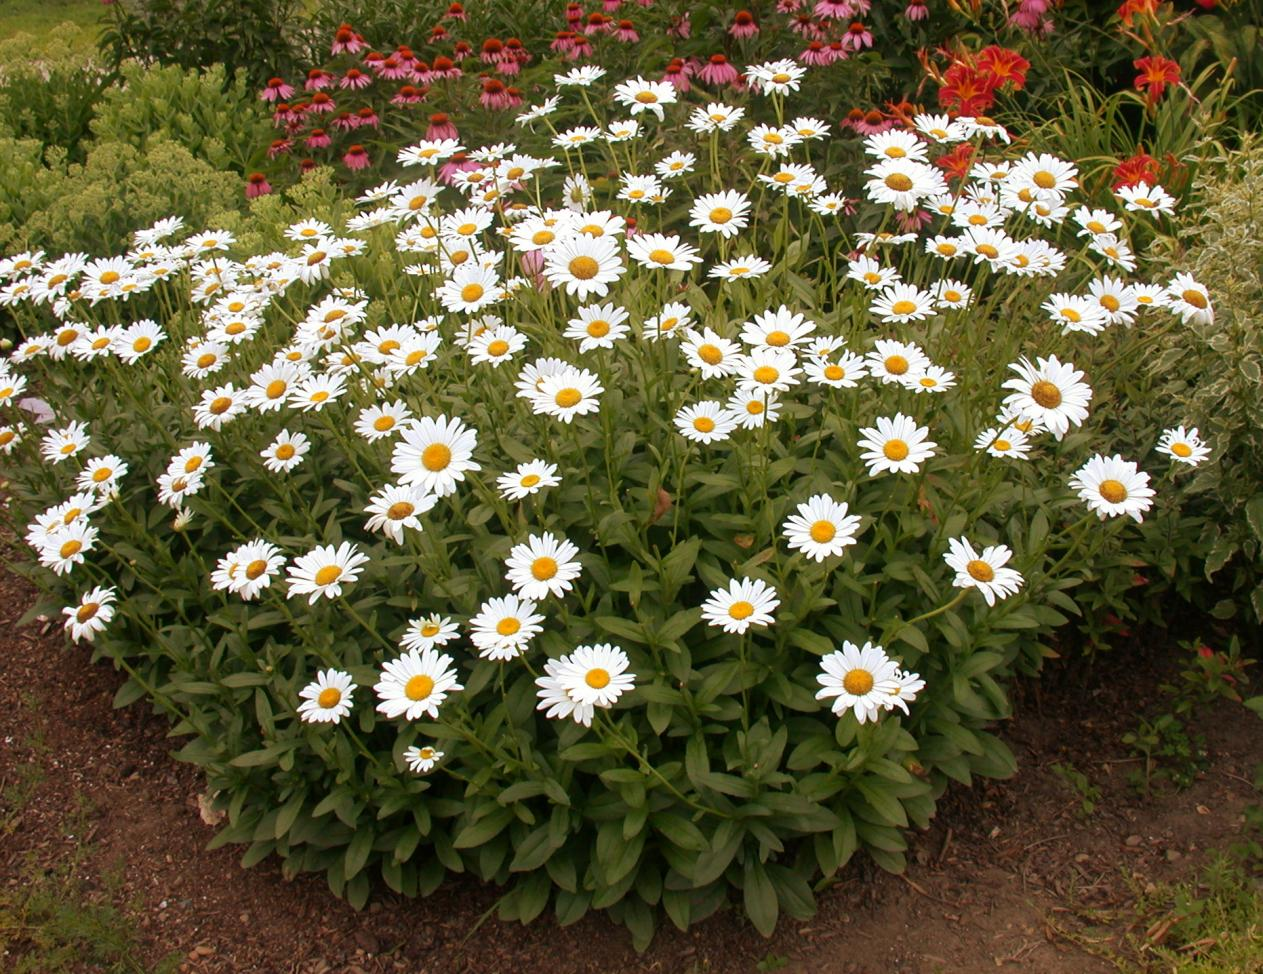 Shasta Daisy Umass Amherst Greenhouse Crops And Floriculture Program